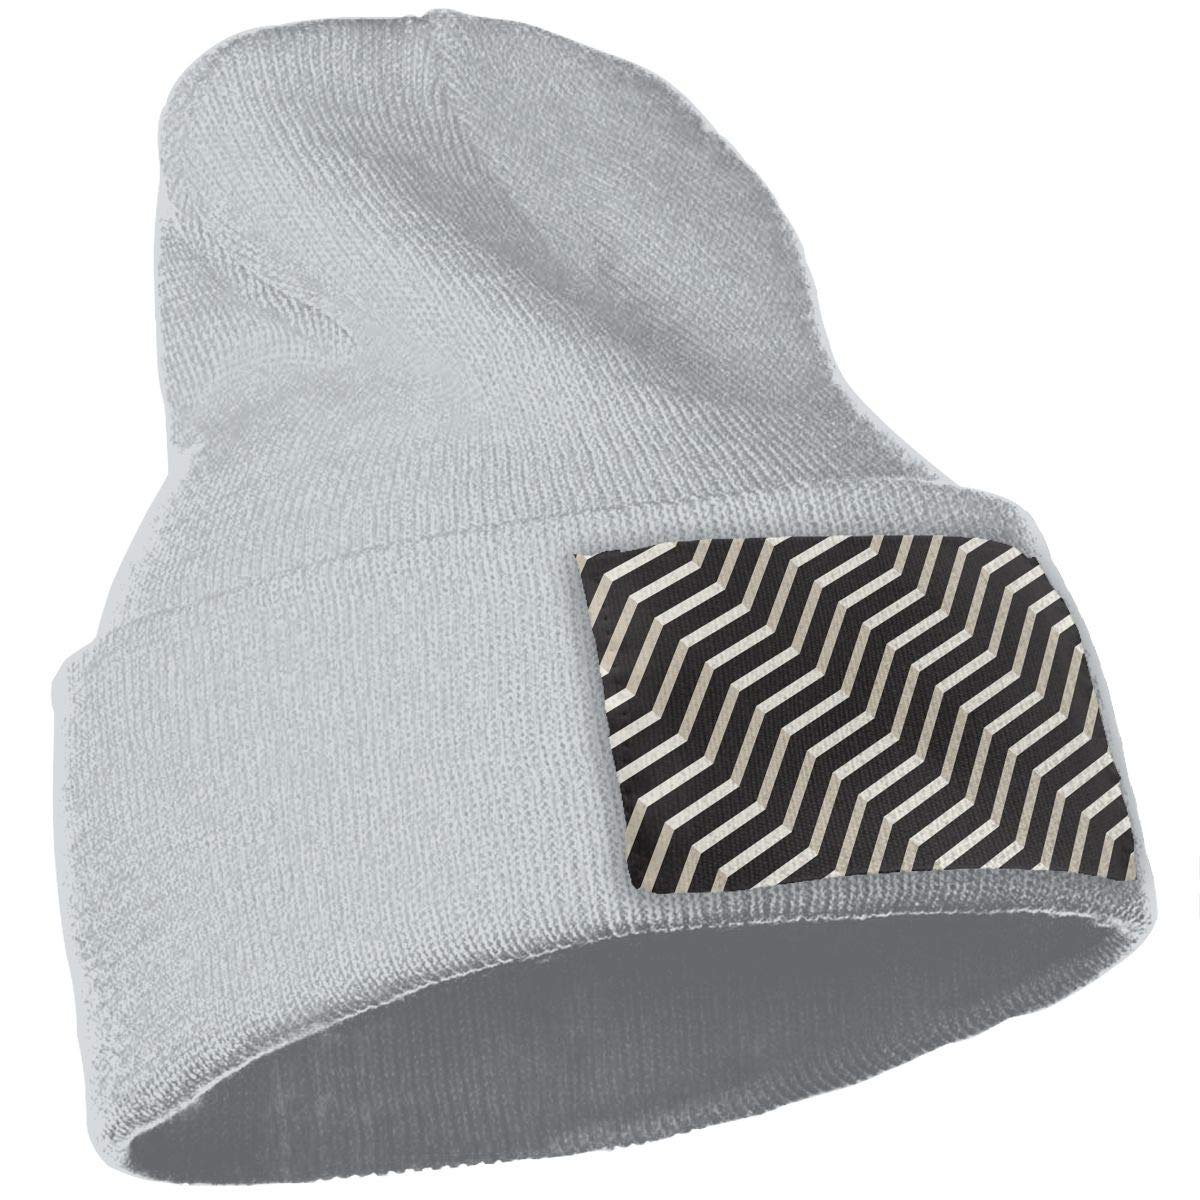 Modern Stylish Texture Unisex Fashion Knitted Hat Luxury Hip-Hop Cap